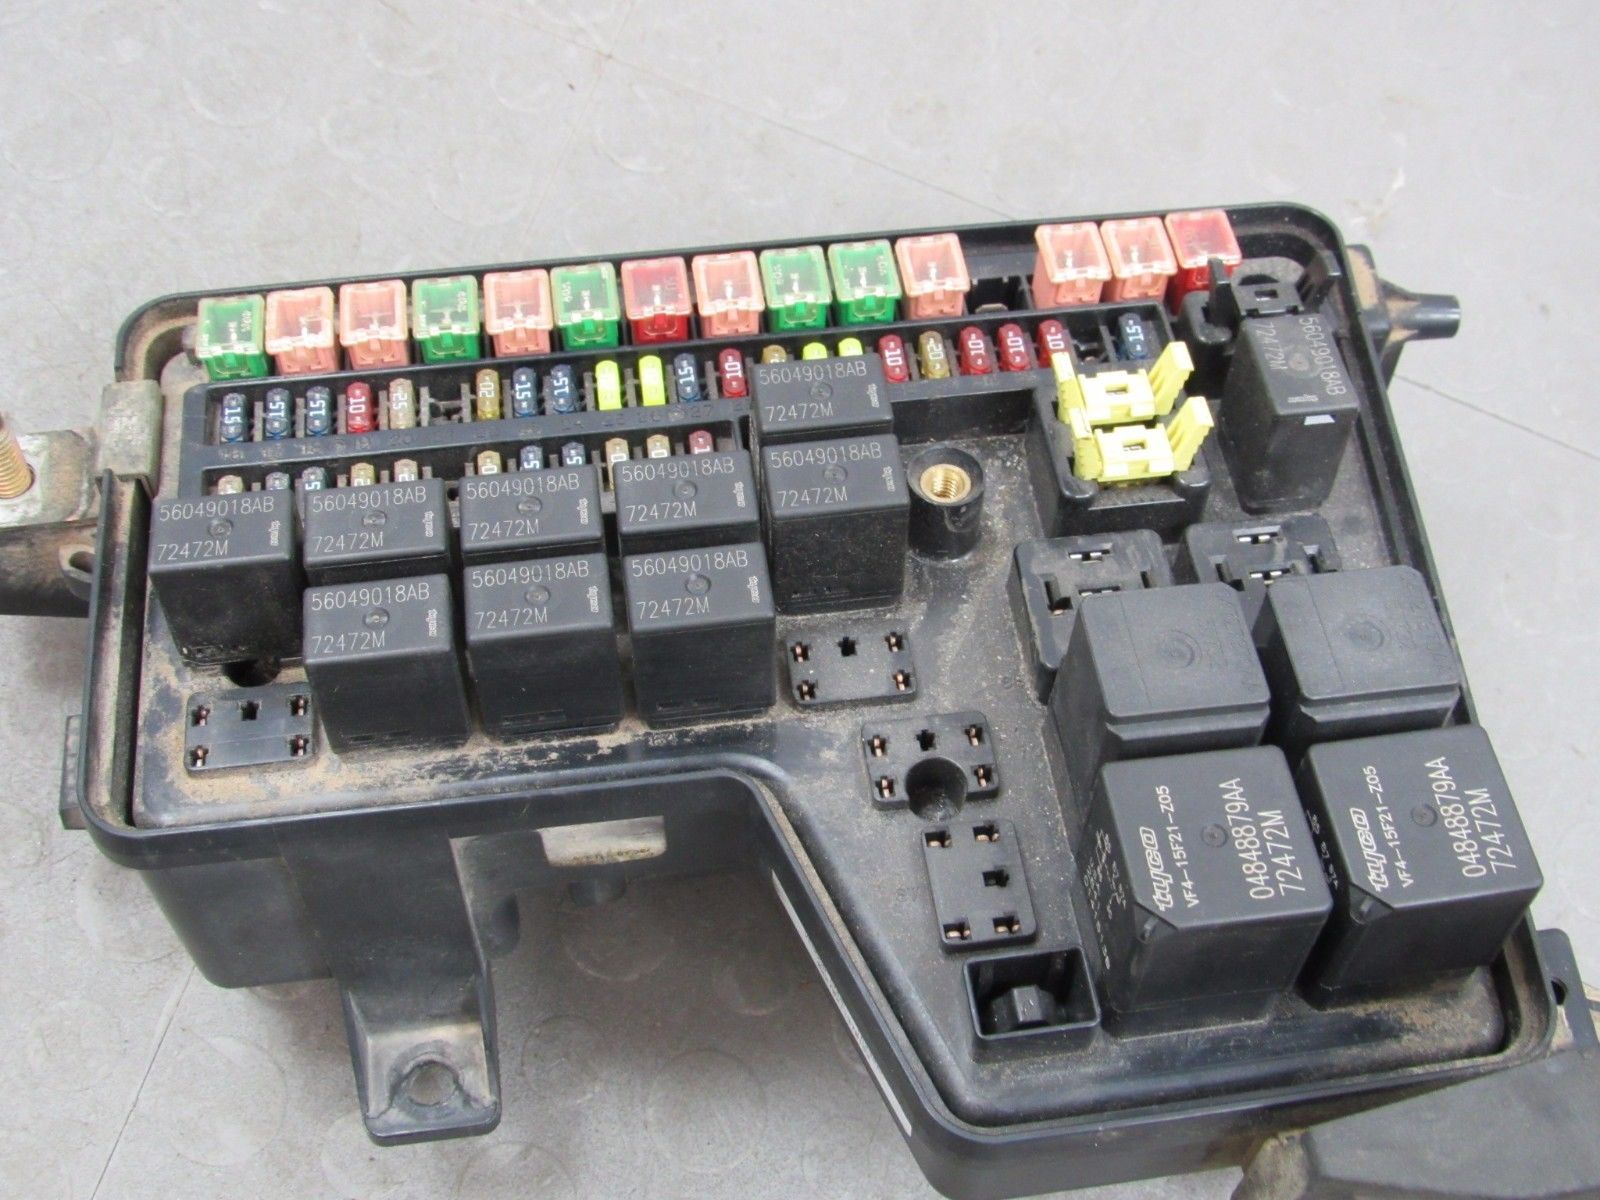 02 03 dodge ram integrated power distribution module fuse box rh  importapart com 03 dodge ram fuse box diagram 03 dodge ram 2500 fuse box  location